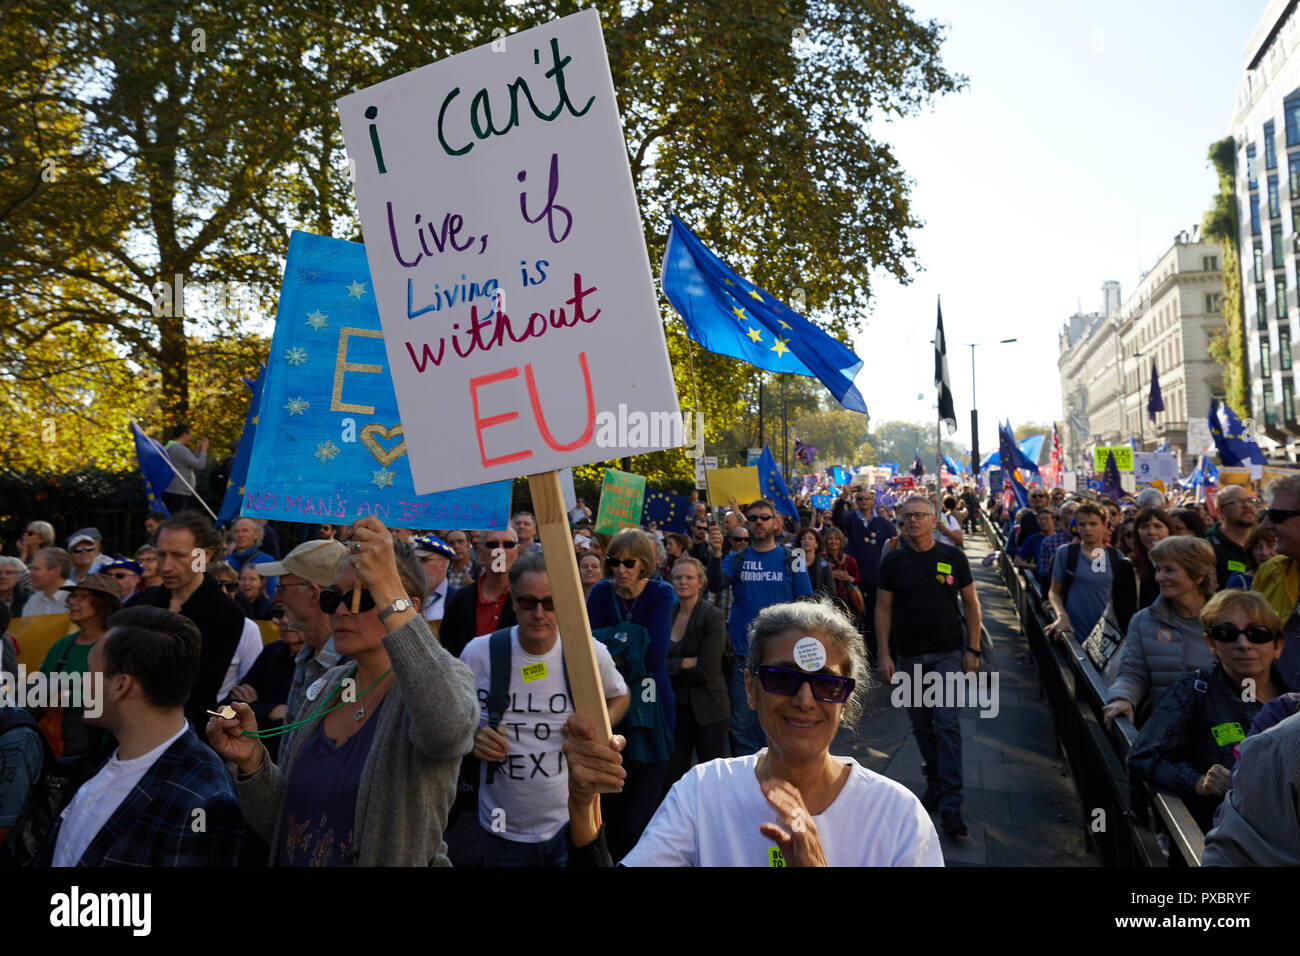 London, UK. 20th Oct, 2018. A placard held aloft at the People's Vote march through the centre of London. Credit: Kevin J. Frost/Alamy Live News Stock Photo